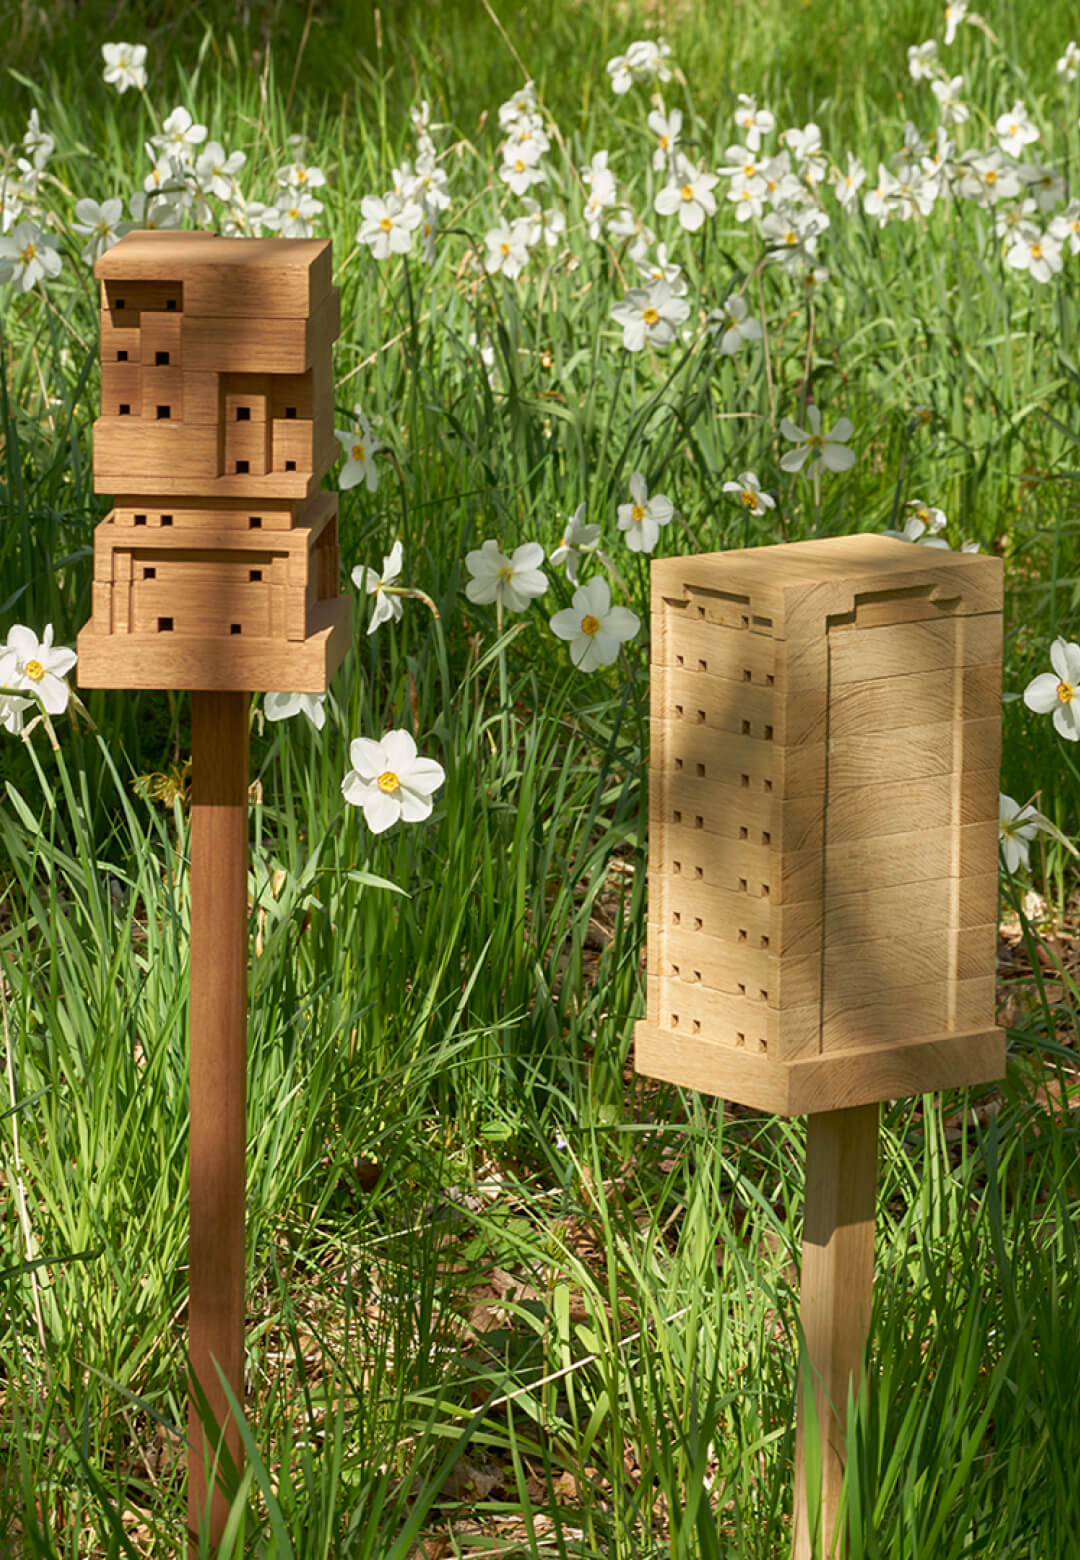 'Bee Home' placed in a garden | SPACE10 | STIRworld